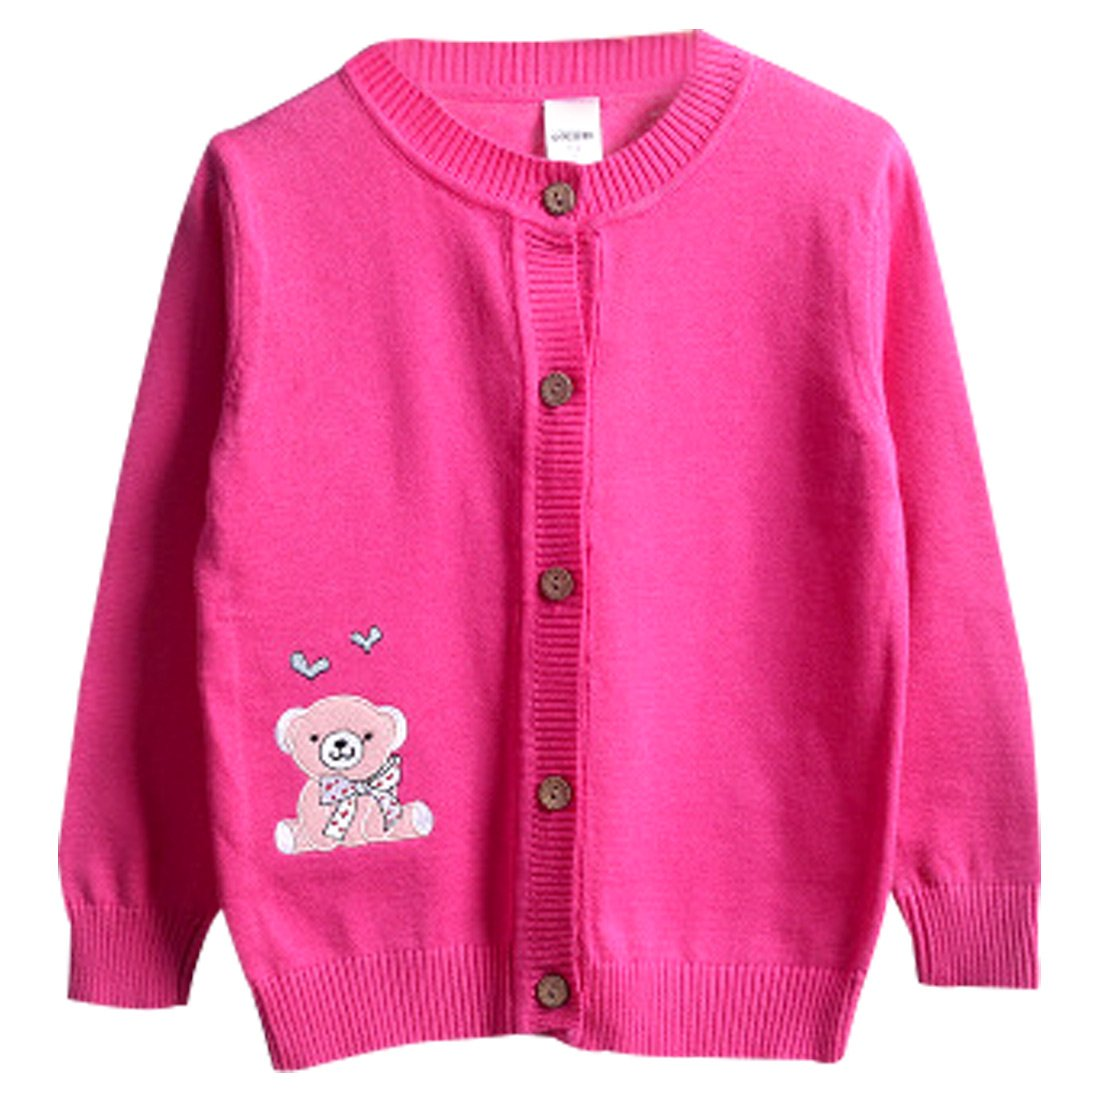 FULL BLESSING Girl Spring Cardigan Button-up Sweater with Cute Bear 3 Color 5 Size